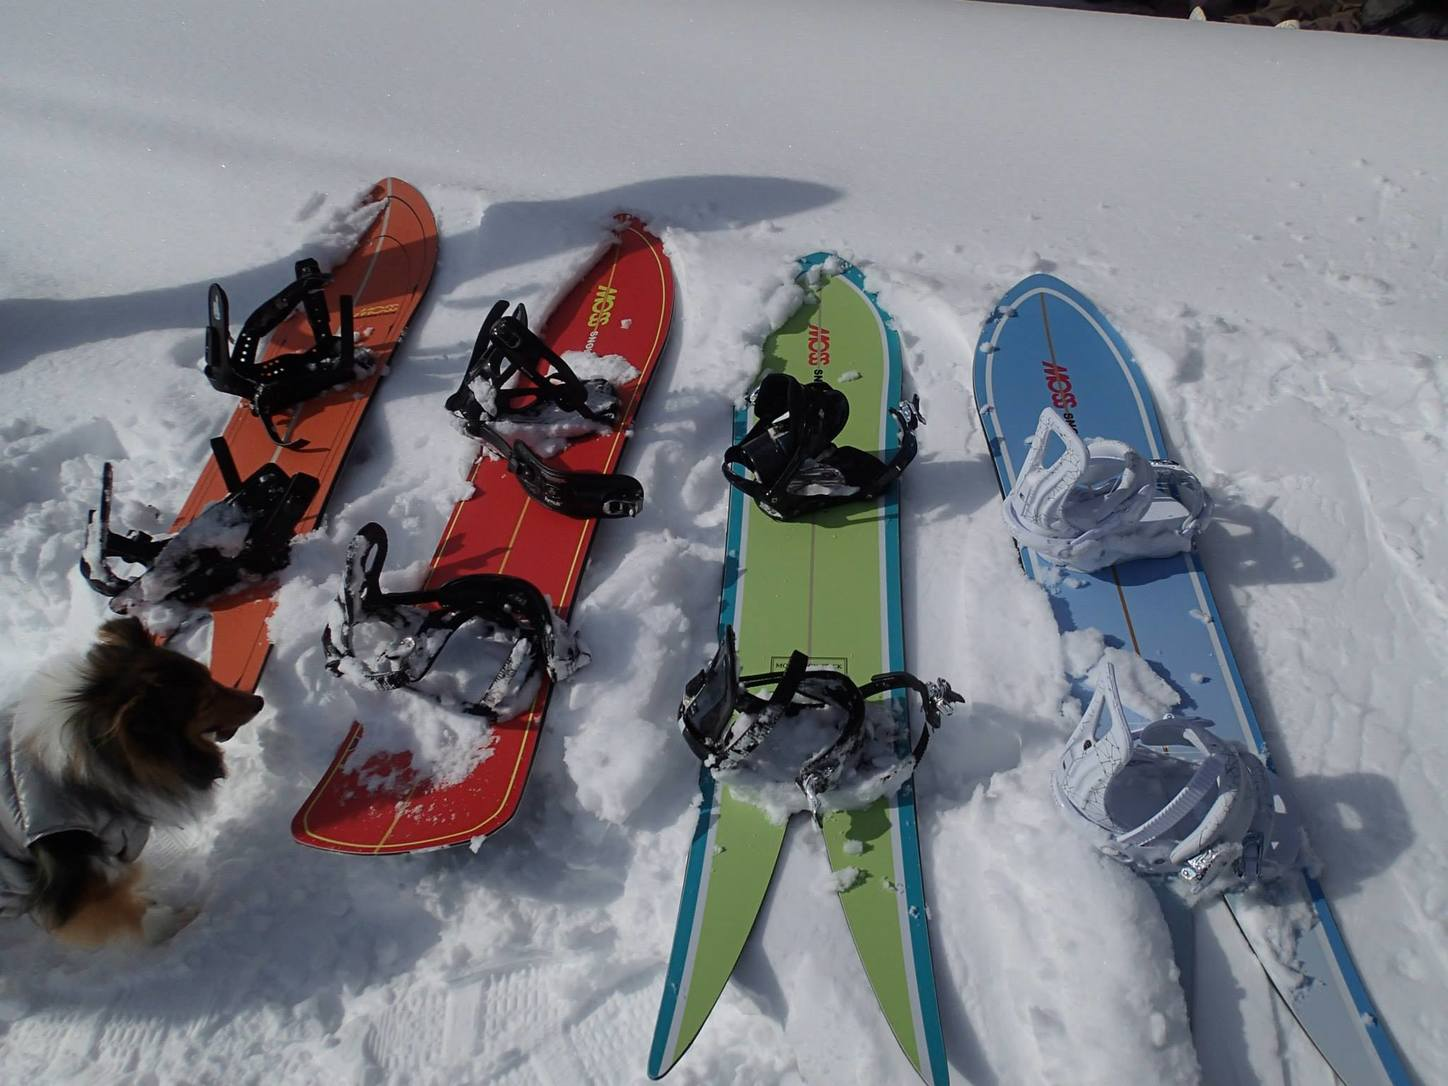 Snowsurf boards ready to roll. Photo by Phil Luza